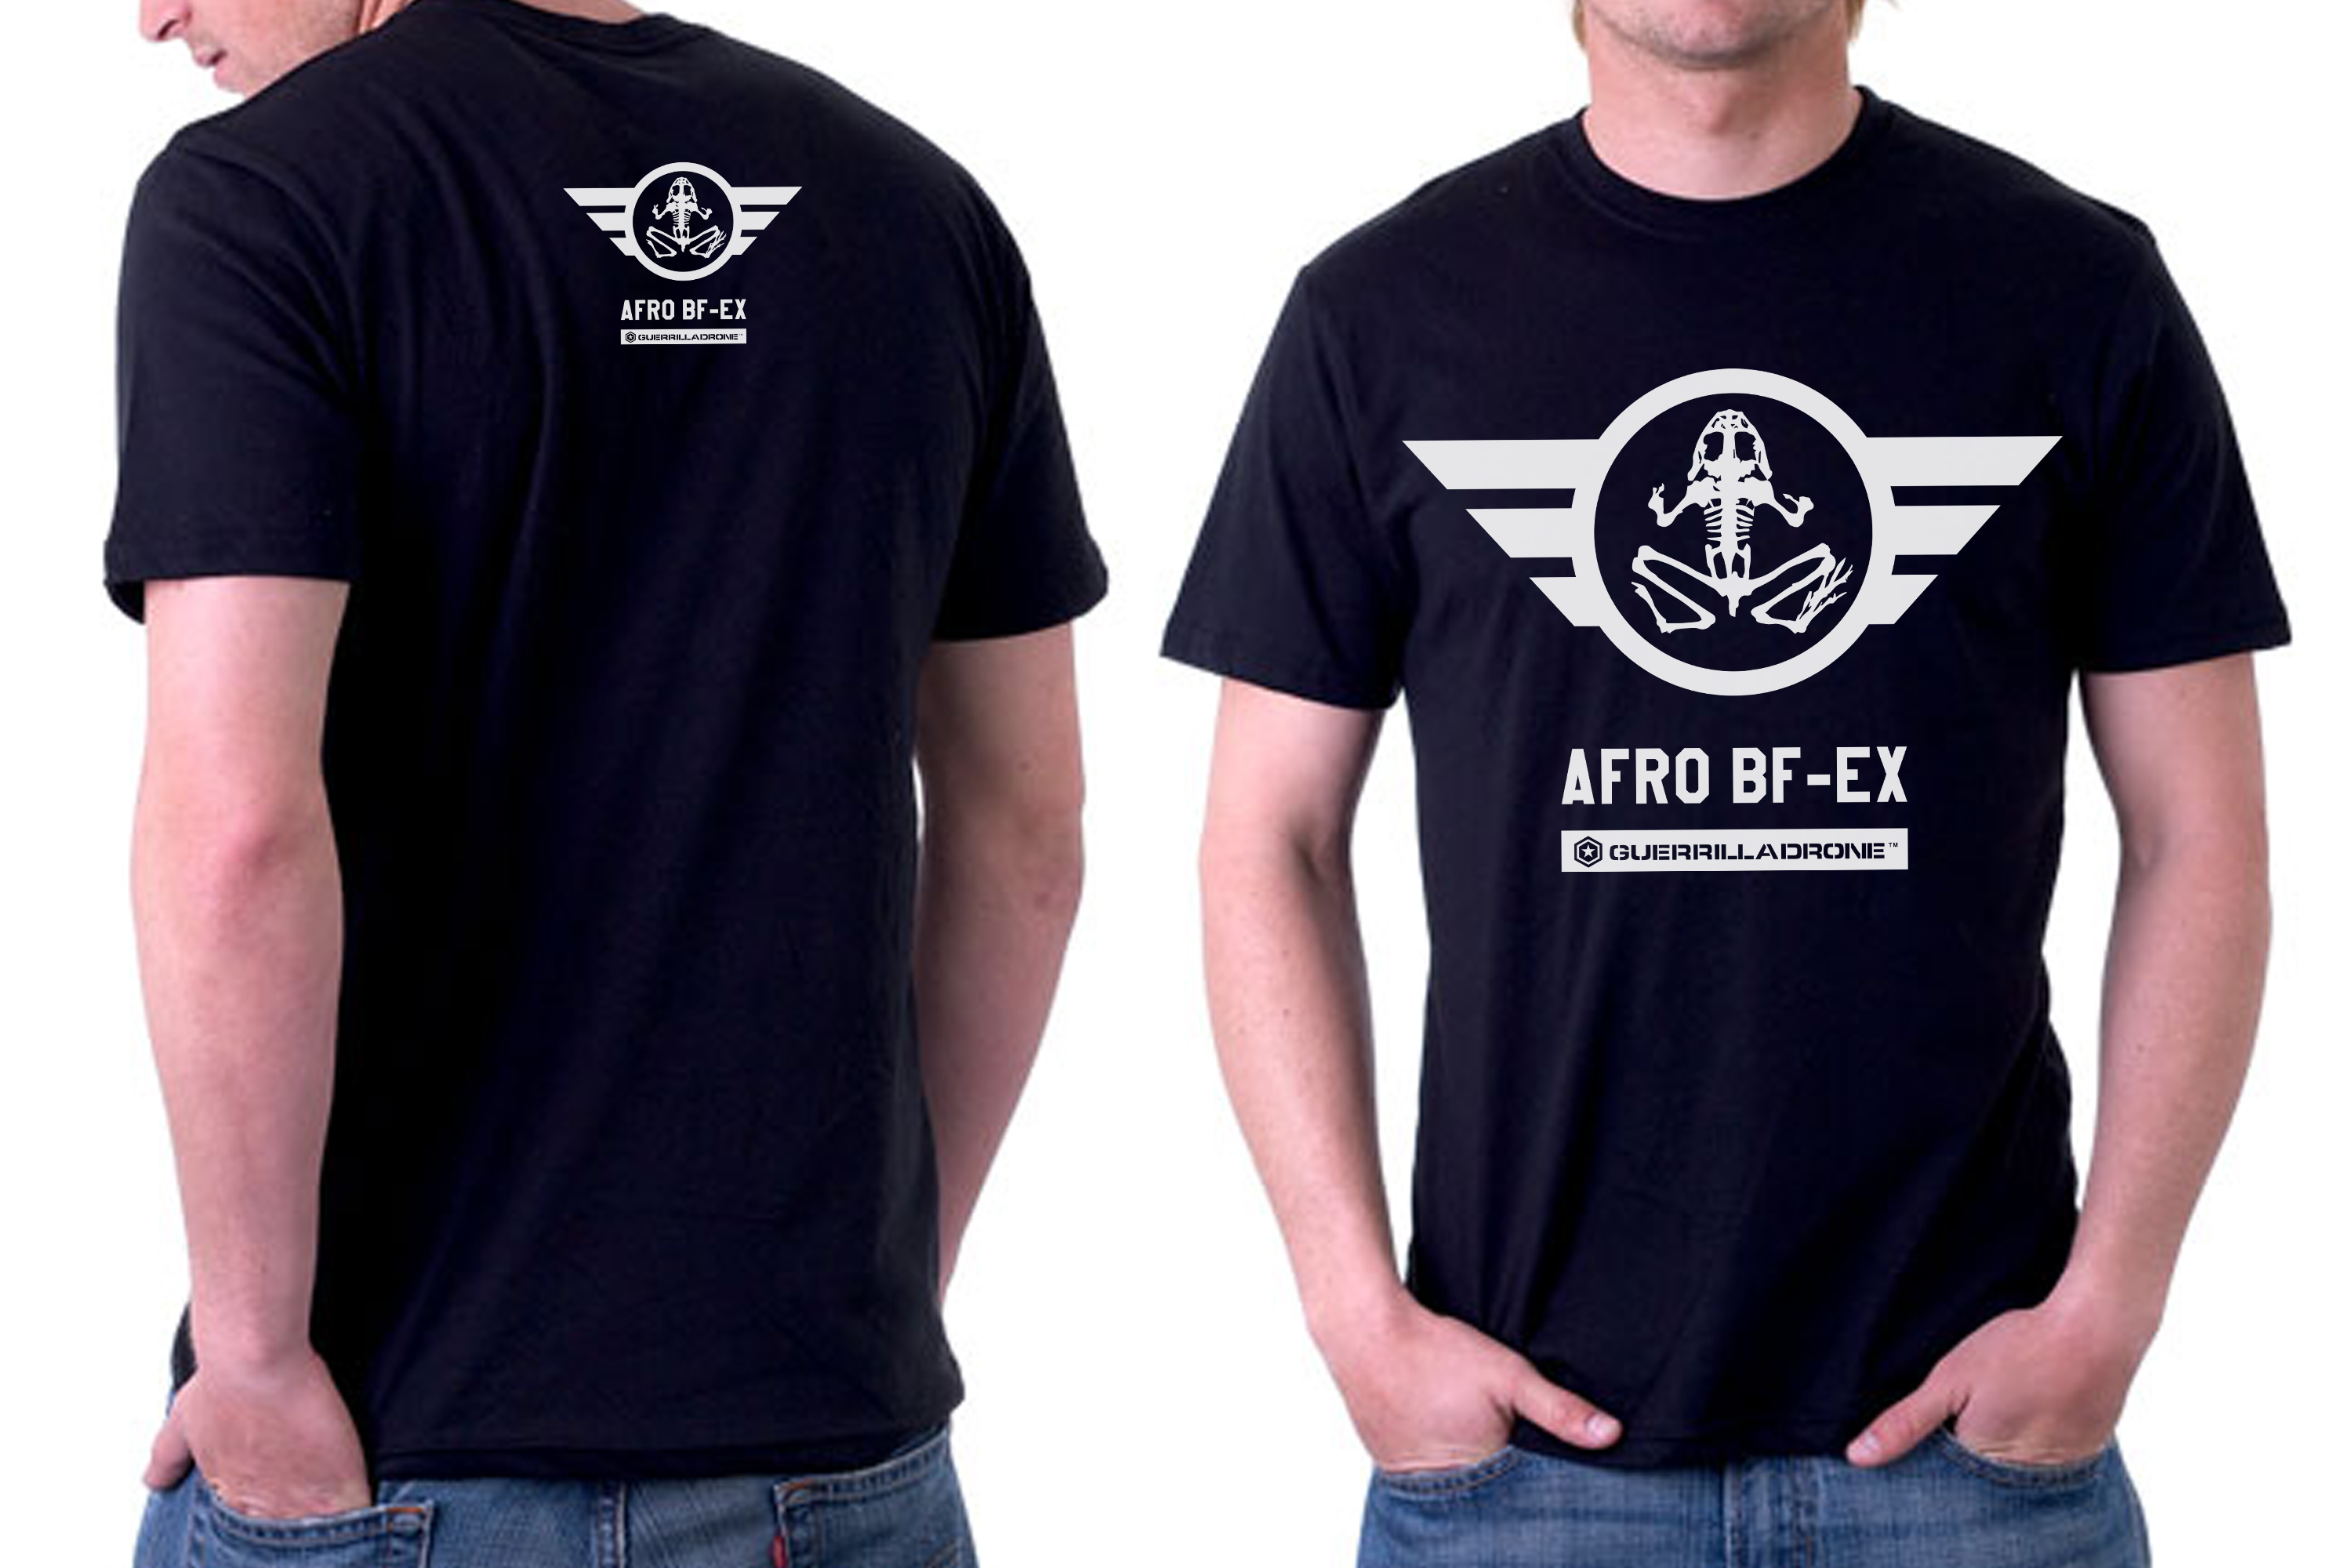 Afro BF-EX T-Shirt